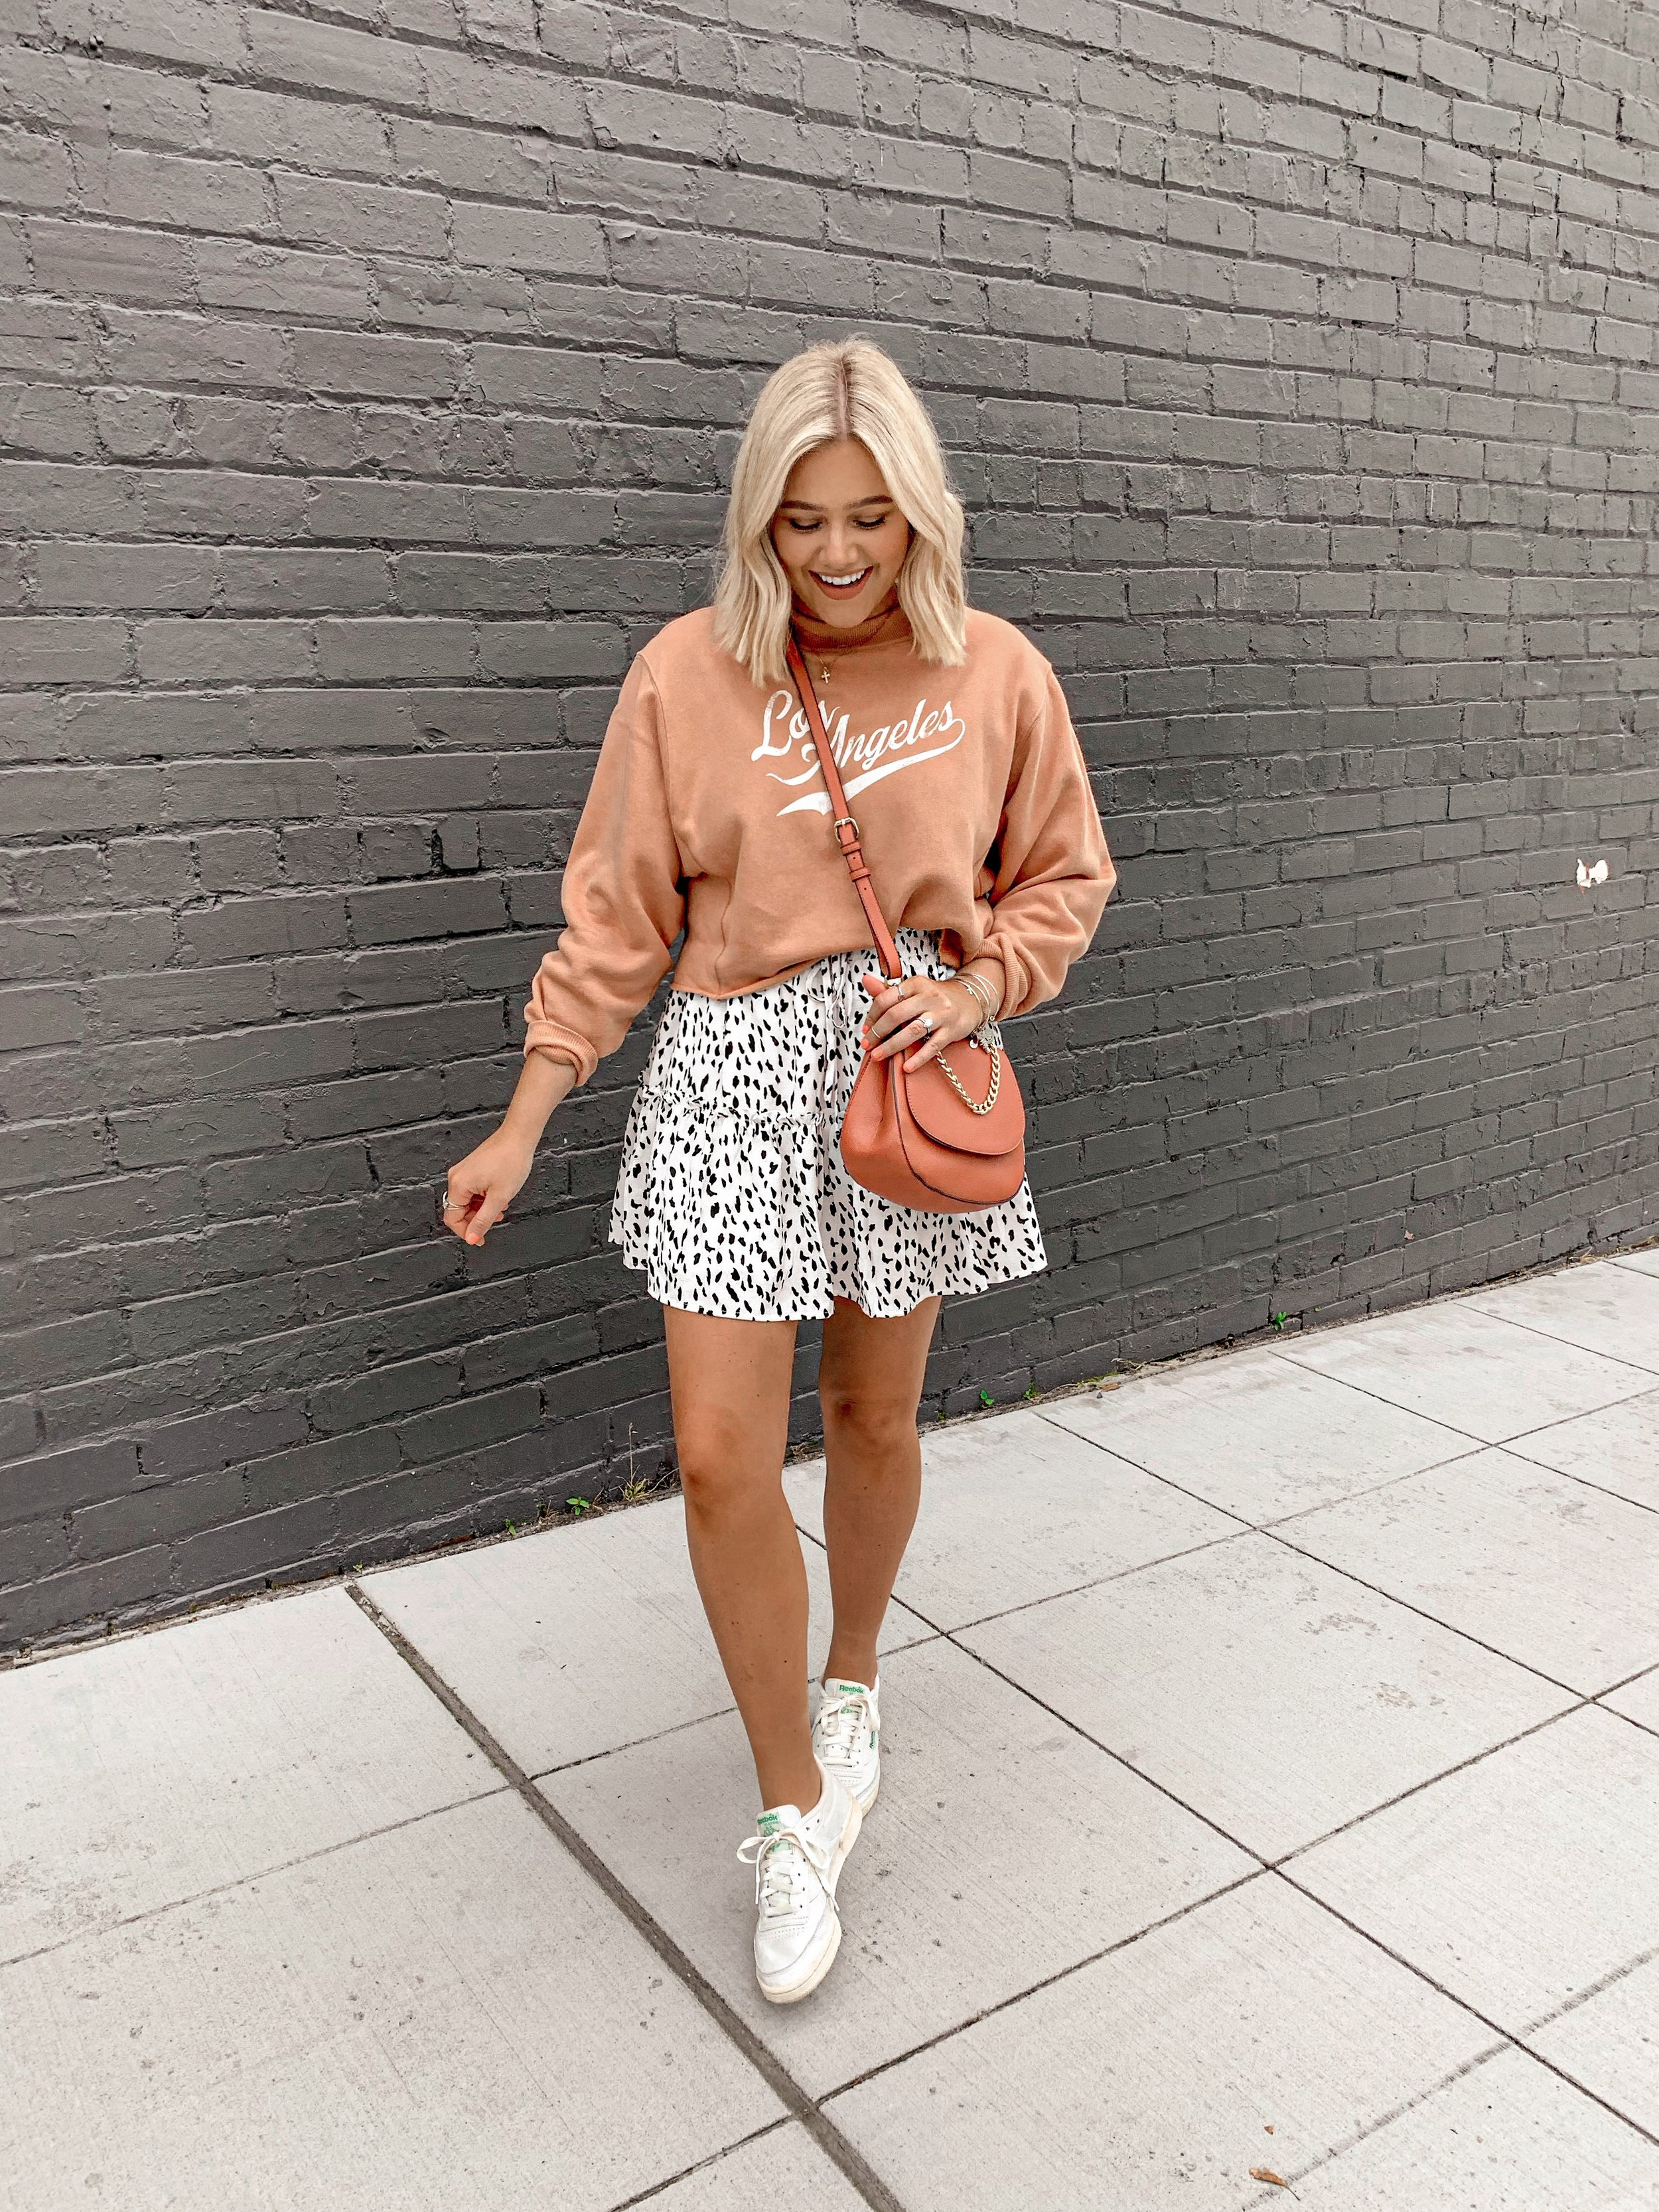 Bre Sheppard White Reebok Sneakers and Skirt